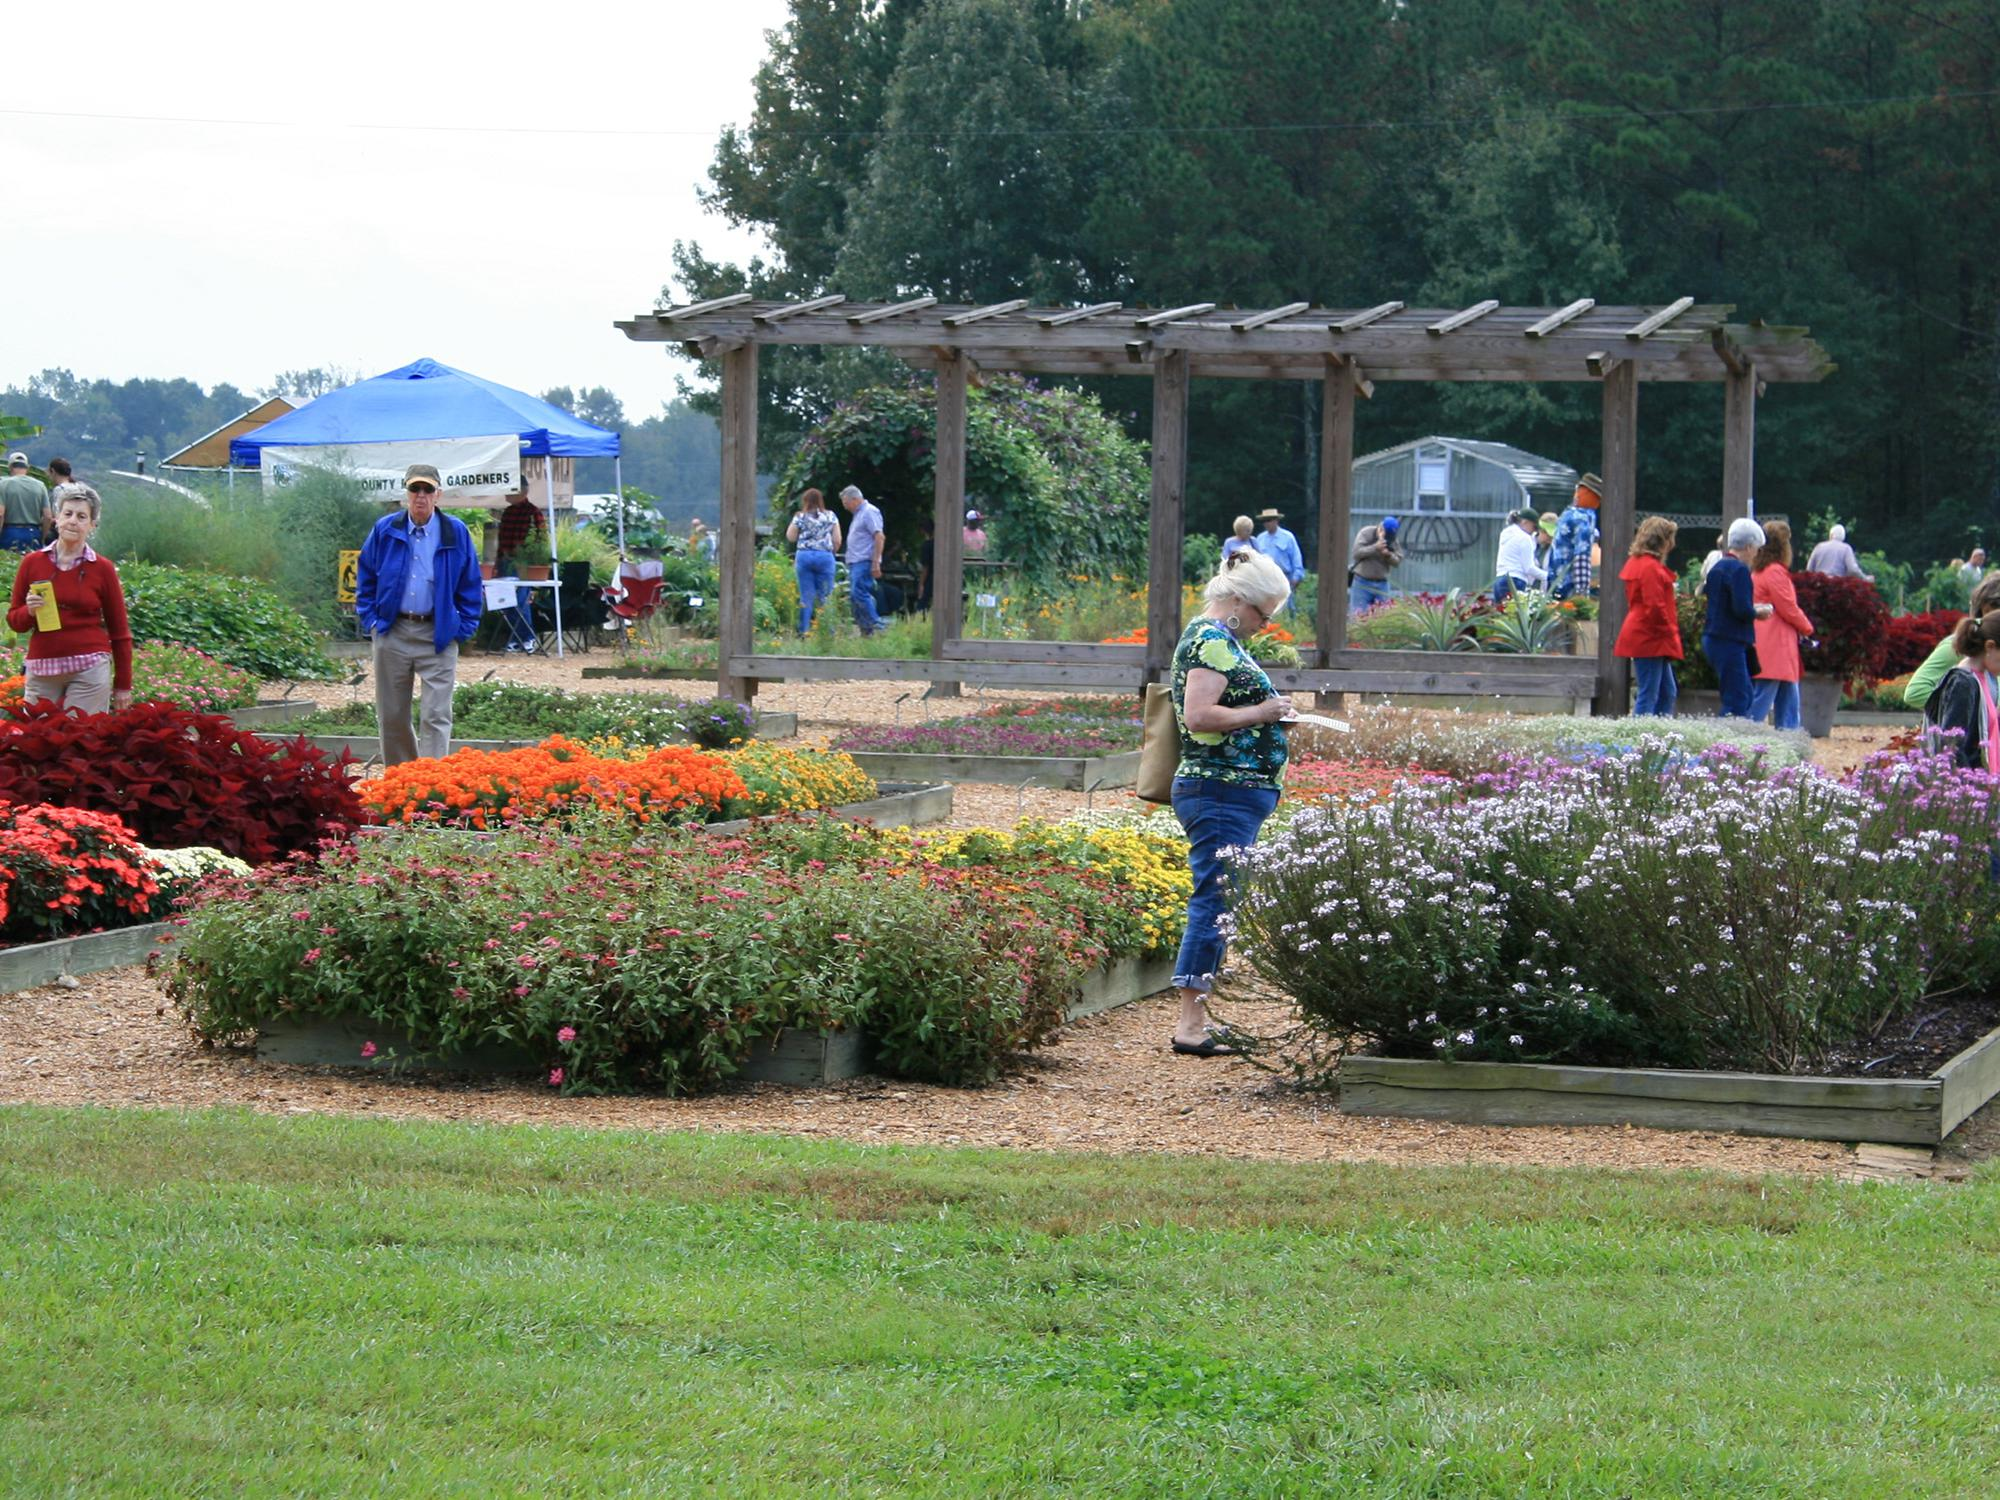 The annual Fall Flower and Garden Fest in Crystal Springs is one of the premier gardening events in the Southeast. Last year, about 5,000 people attended the two-day event. (Photo by MSU Extension Service/Gary Bachman)